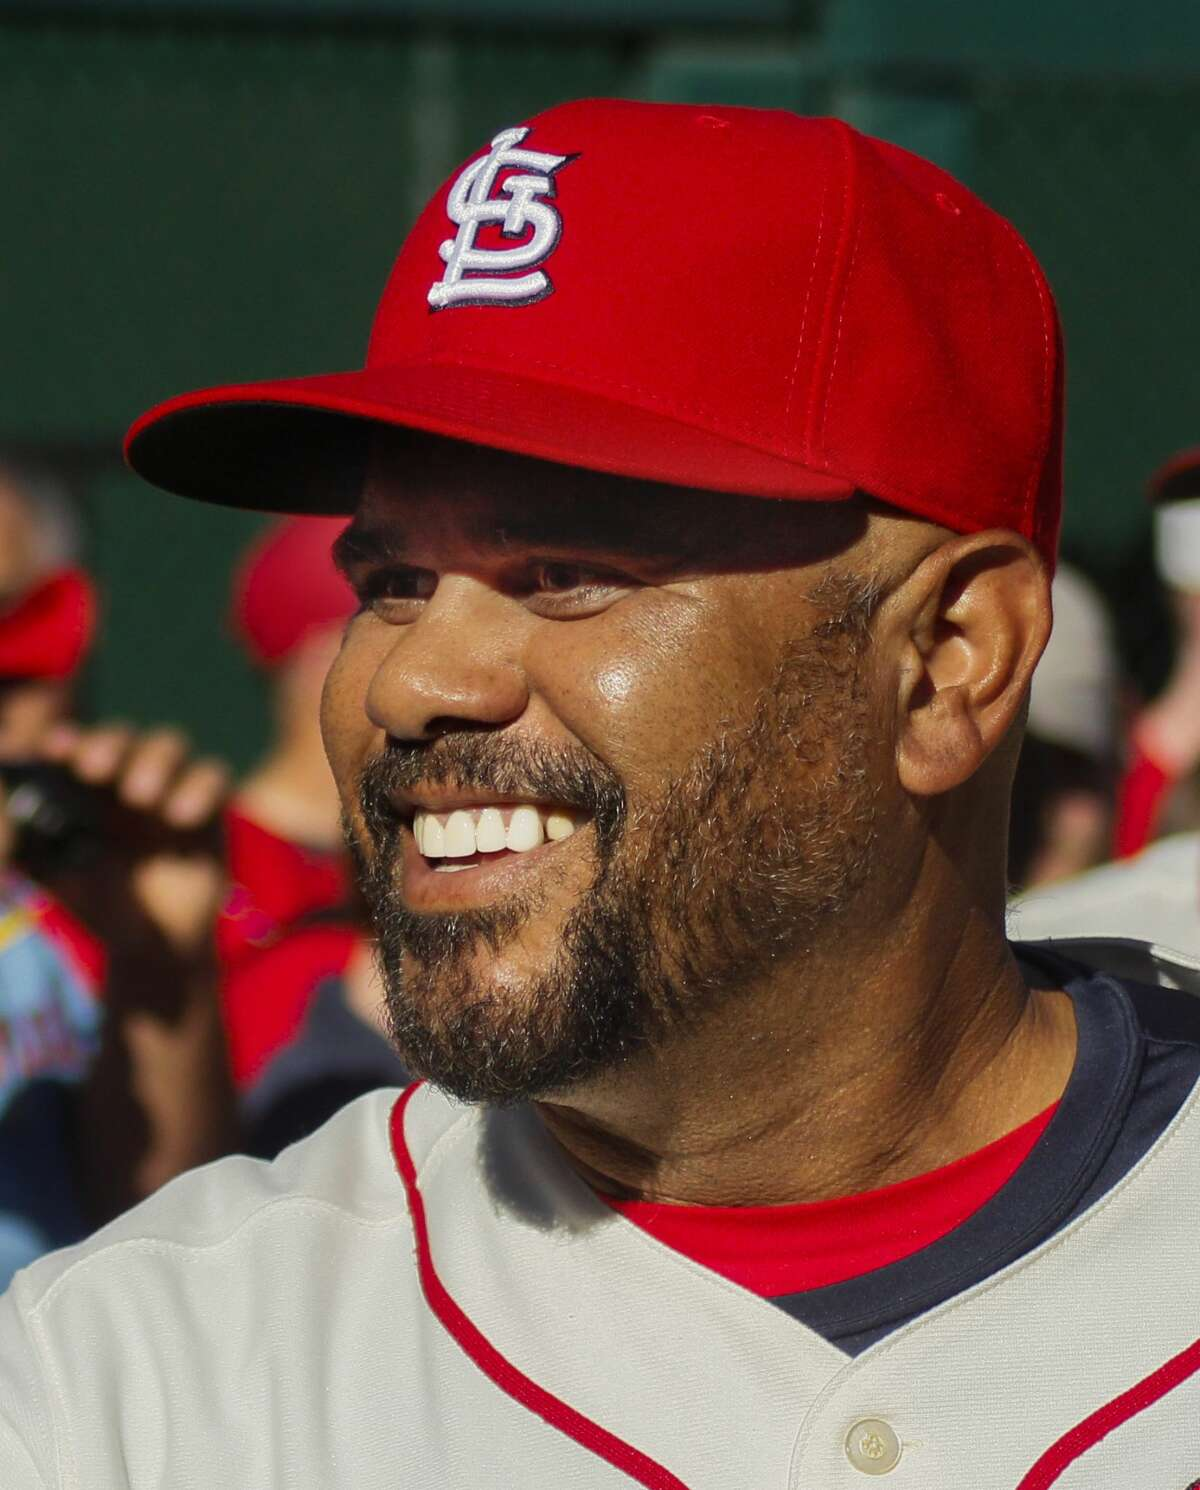 Jose Oqendo should be considered for the St. Louis Cardinals manager position.